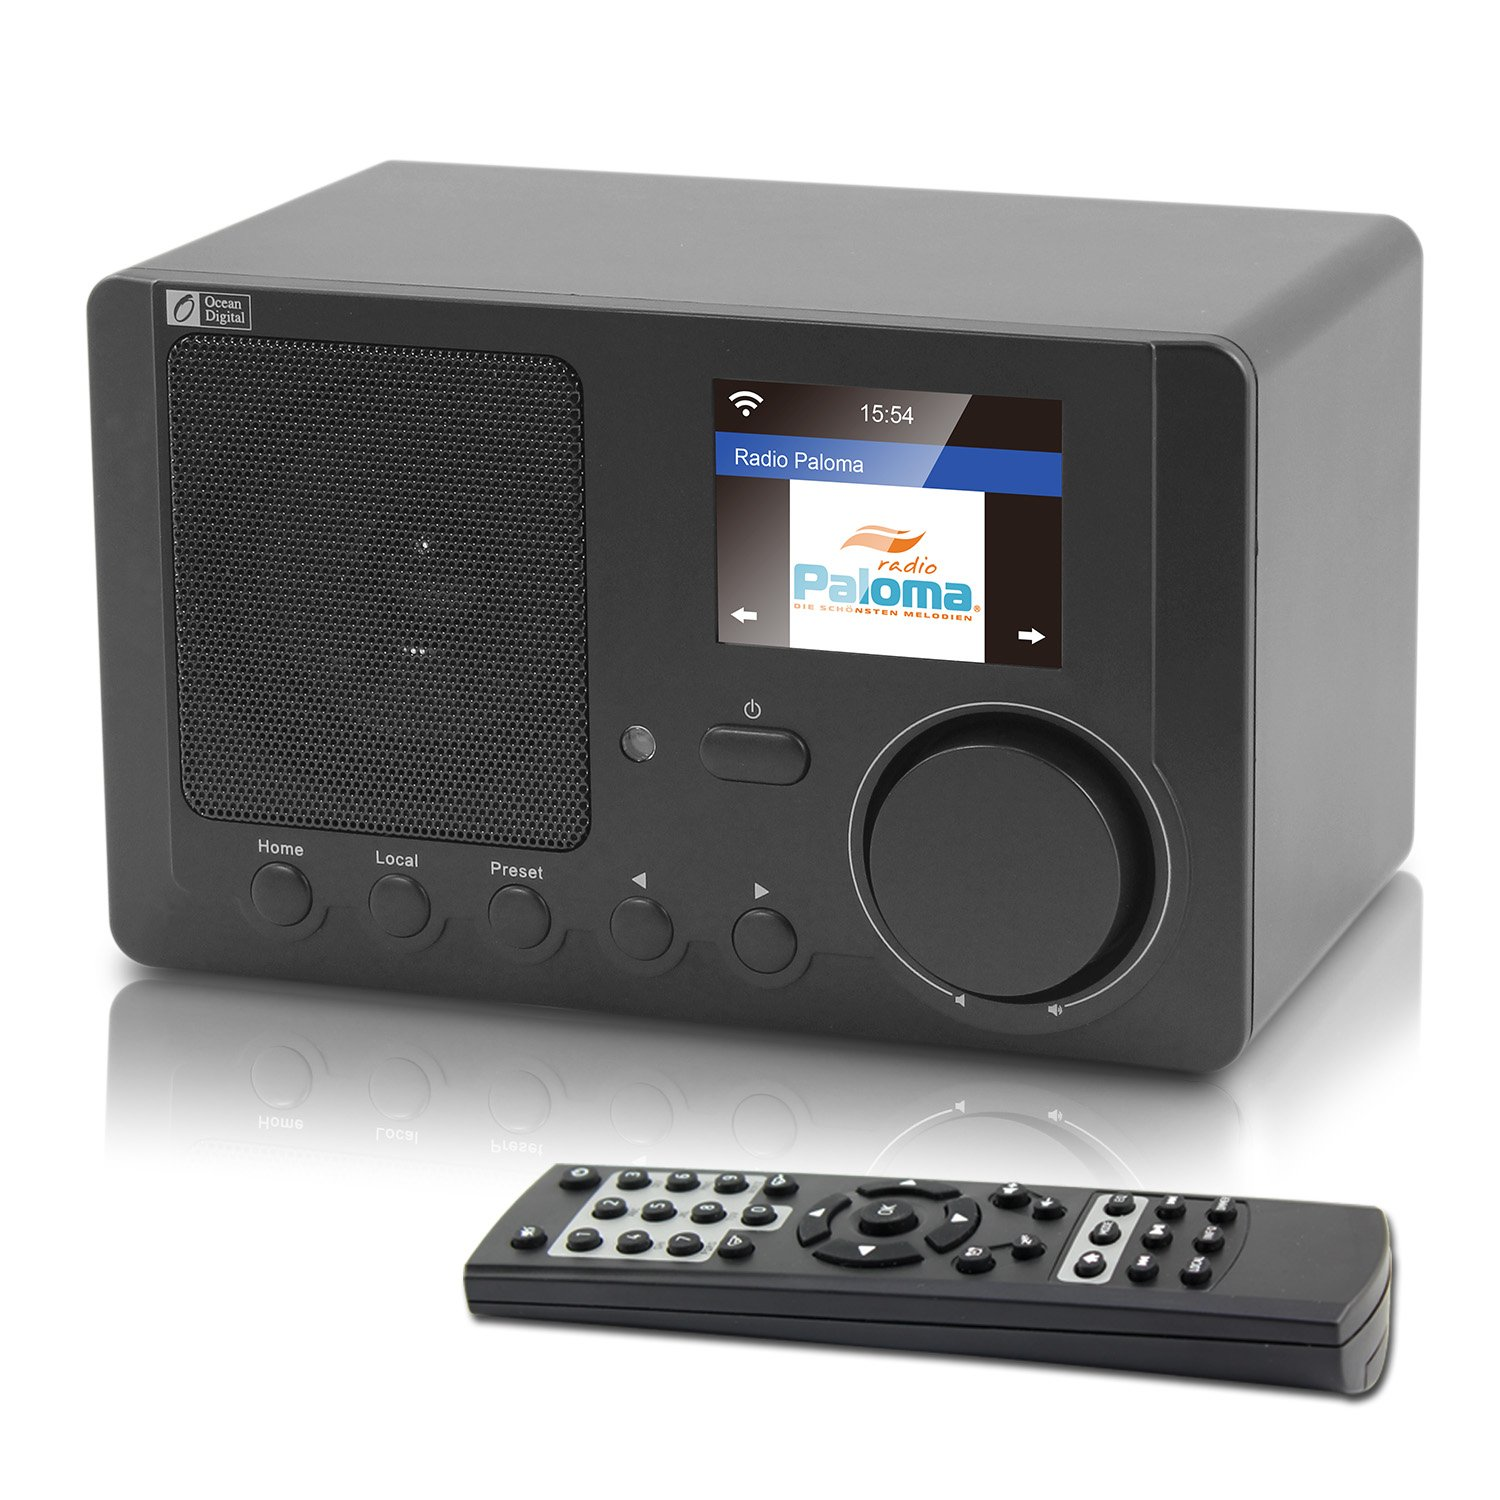 ocean digital internet radio wr 210cb manual